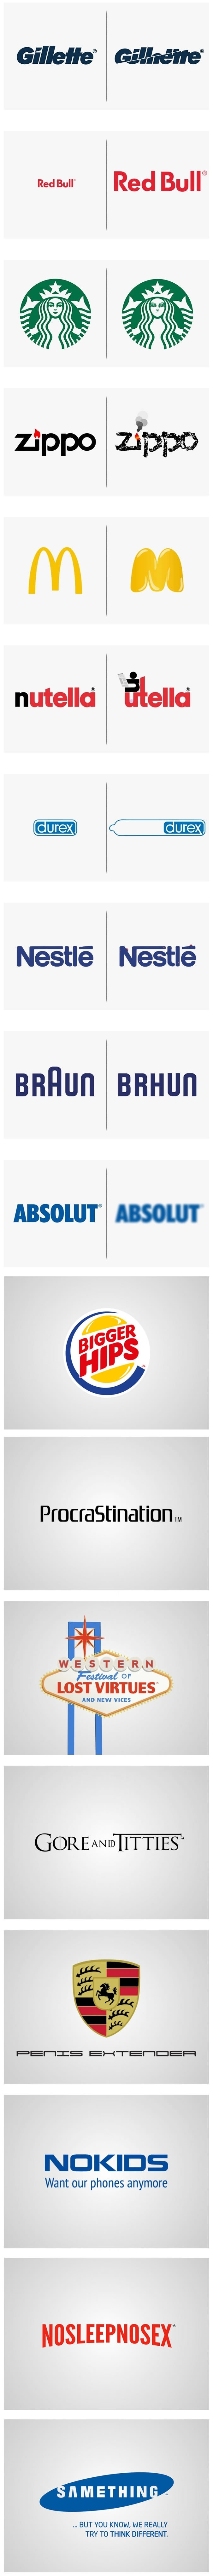 If logos reflected the true nature of the products